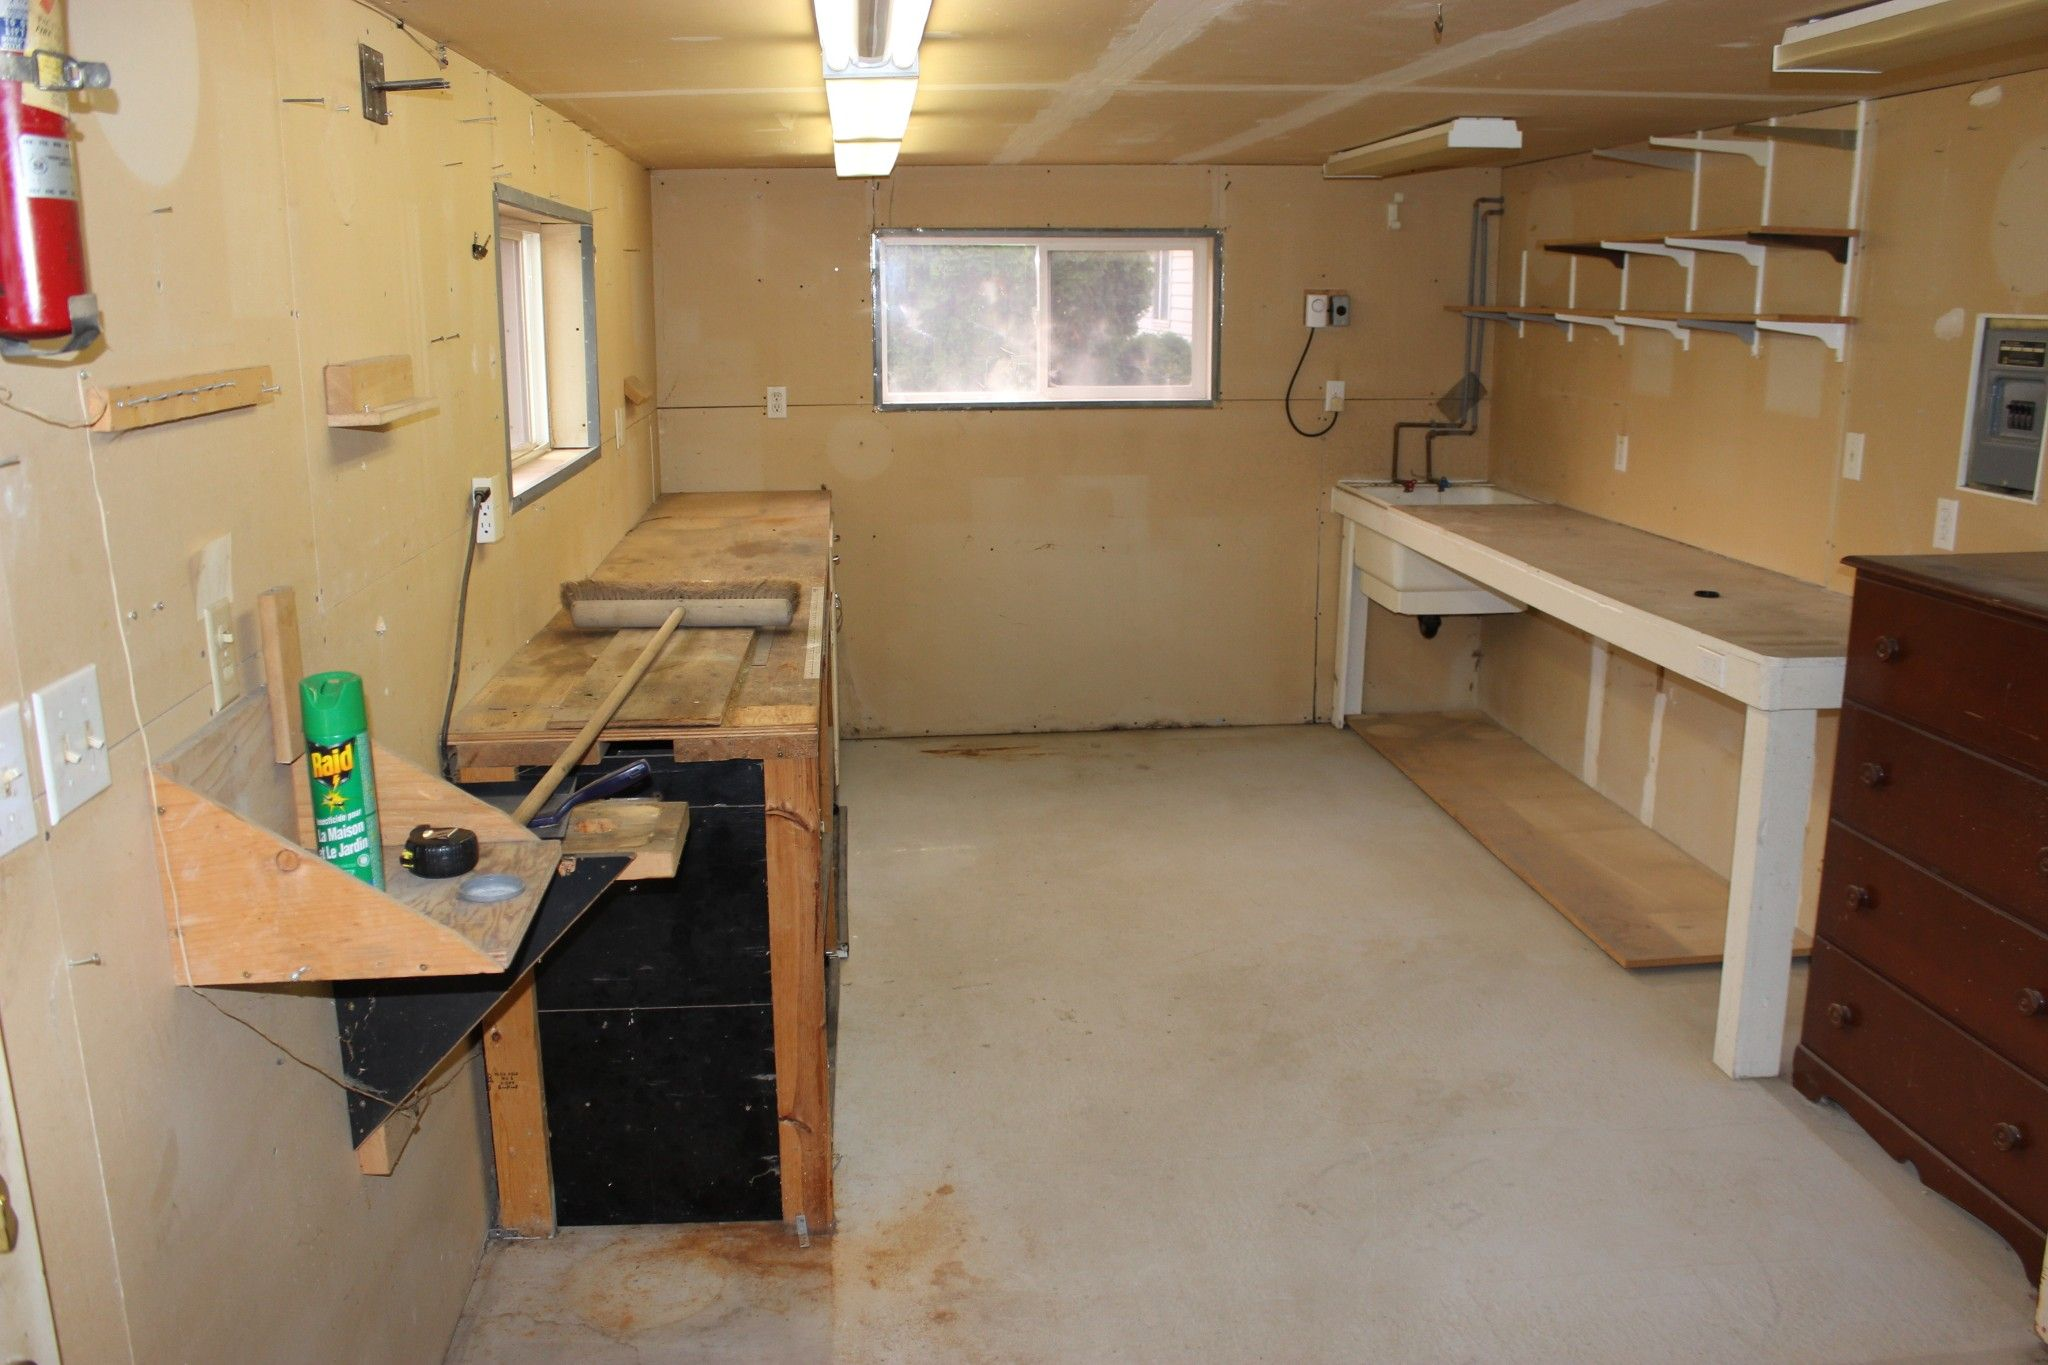 Photo 17: Photos: 22 3099 E Shuswap Road in Kamloops: South Thompson Valley Manufactured Home for sale : MLS®# 147827